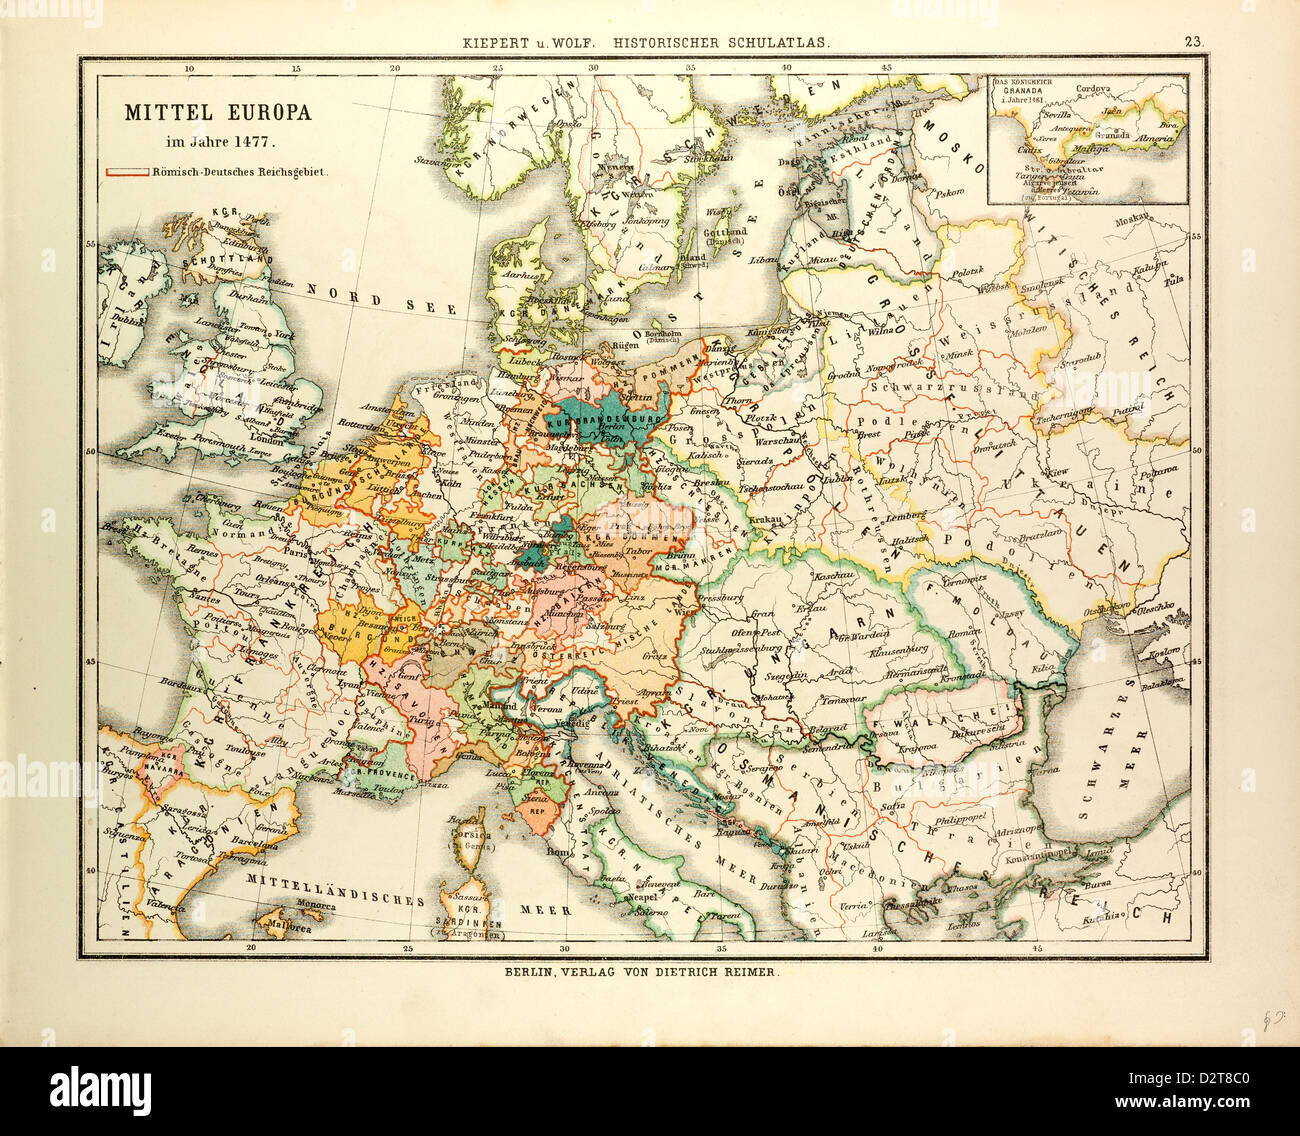 MAP OF CENTRAL EUROPE IN 1477 Stock Photo: 53393872 - Alamy